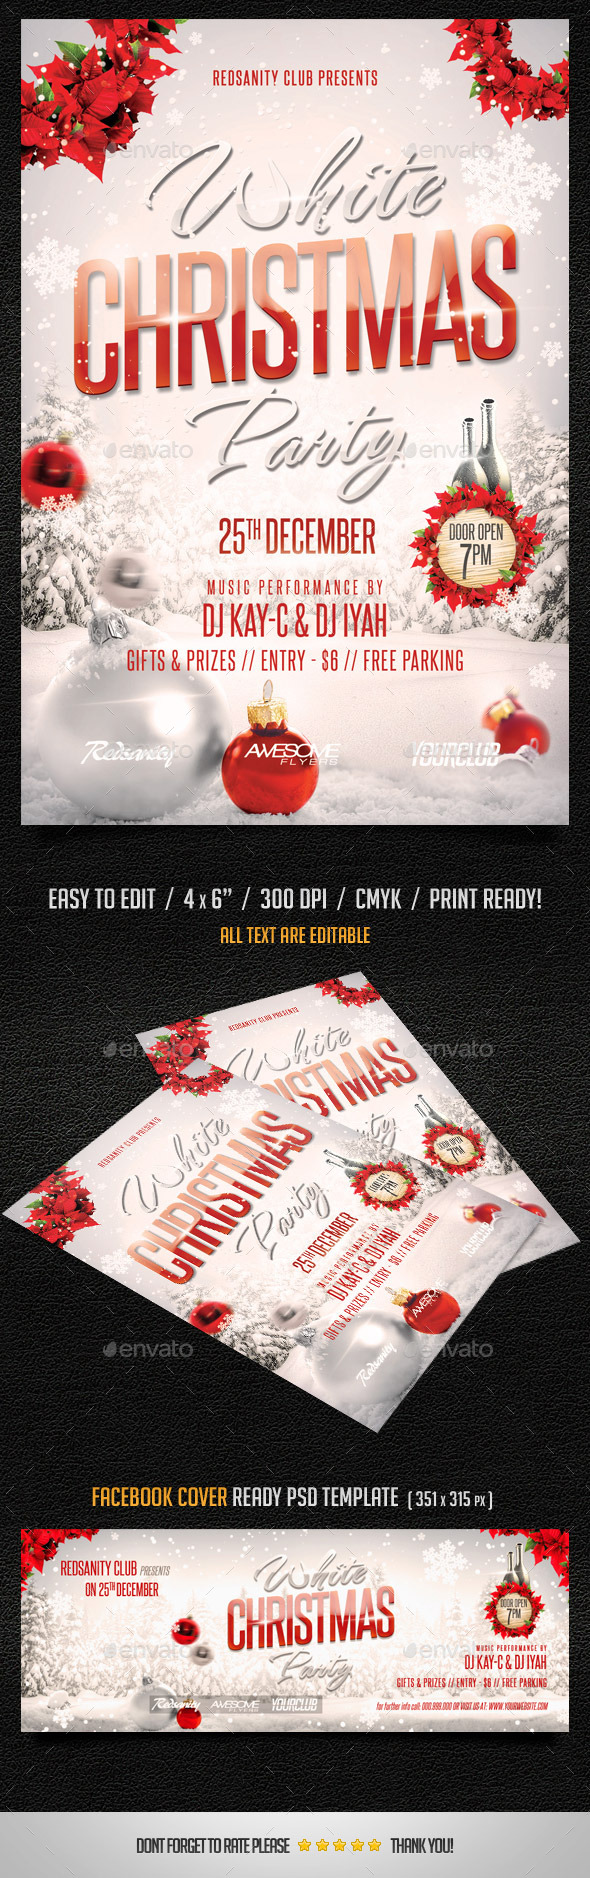 White Christmas Party Flyer plus FB Cover - Holidays Events